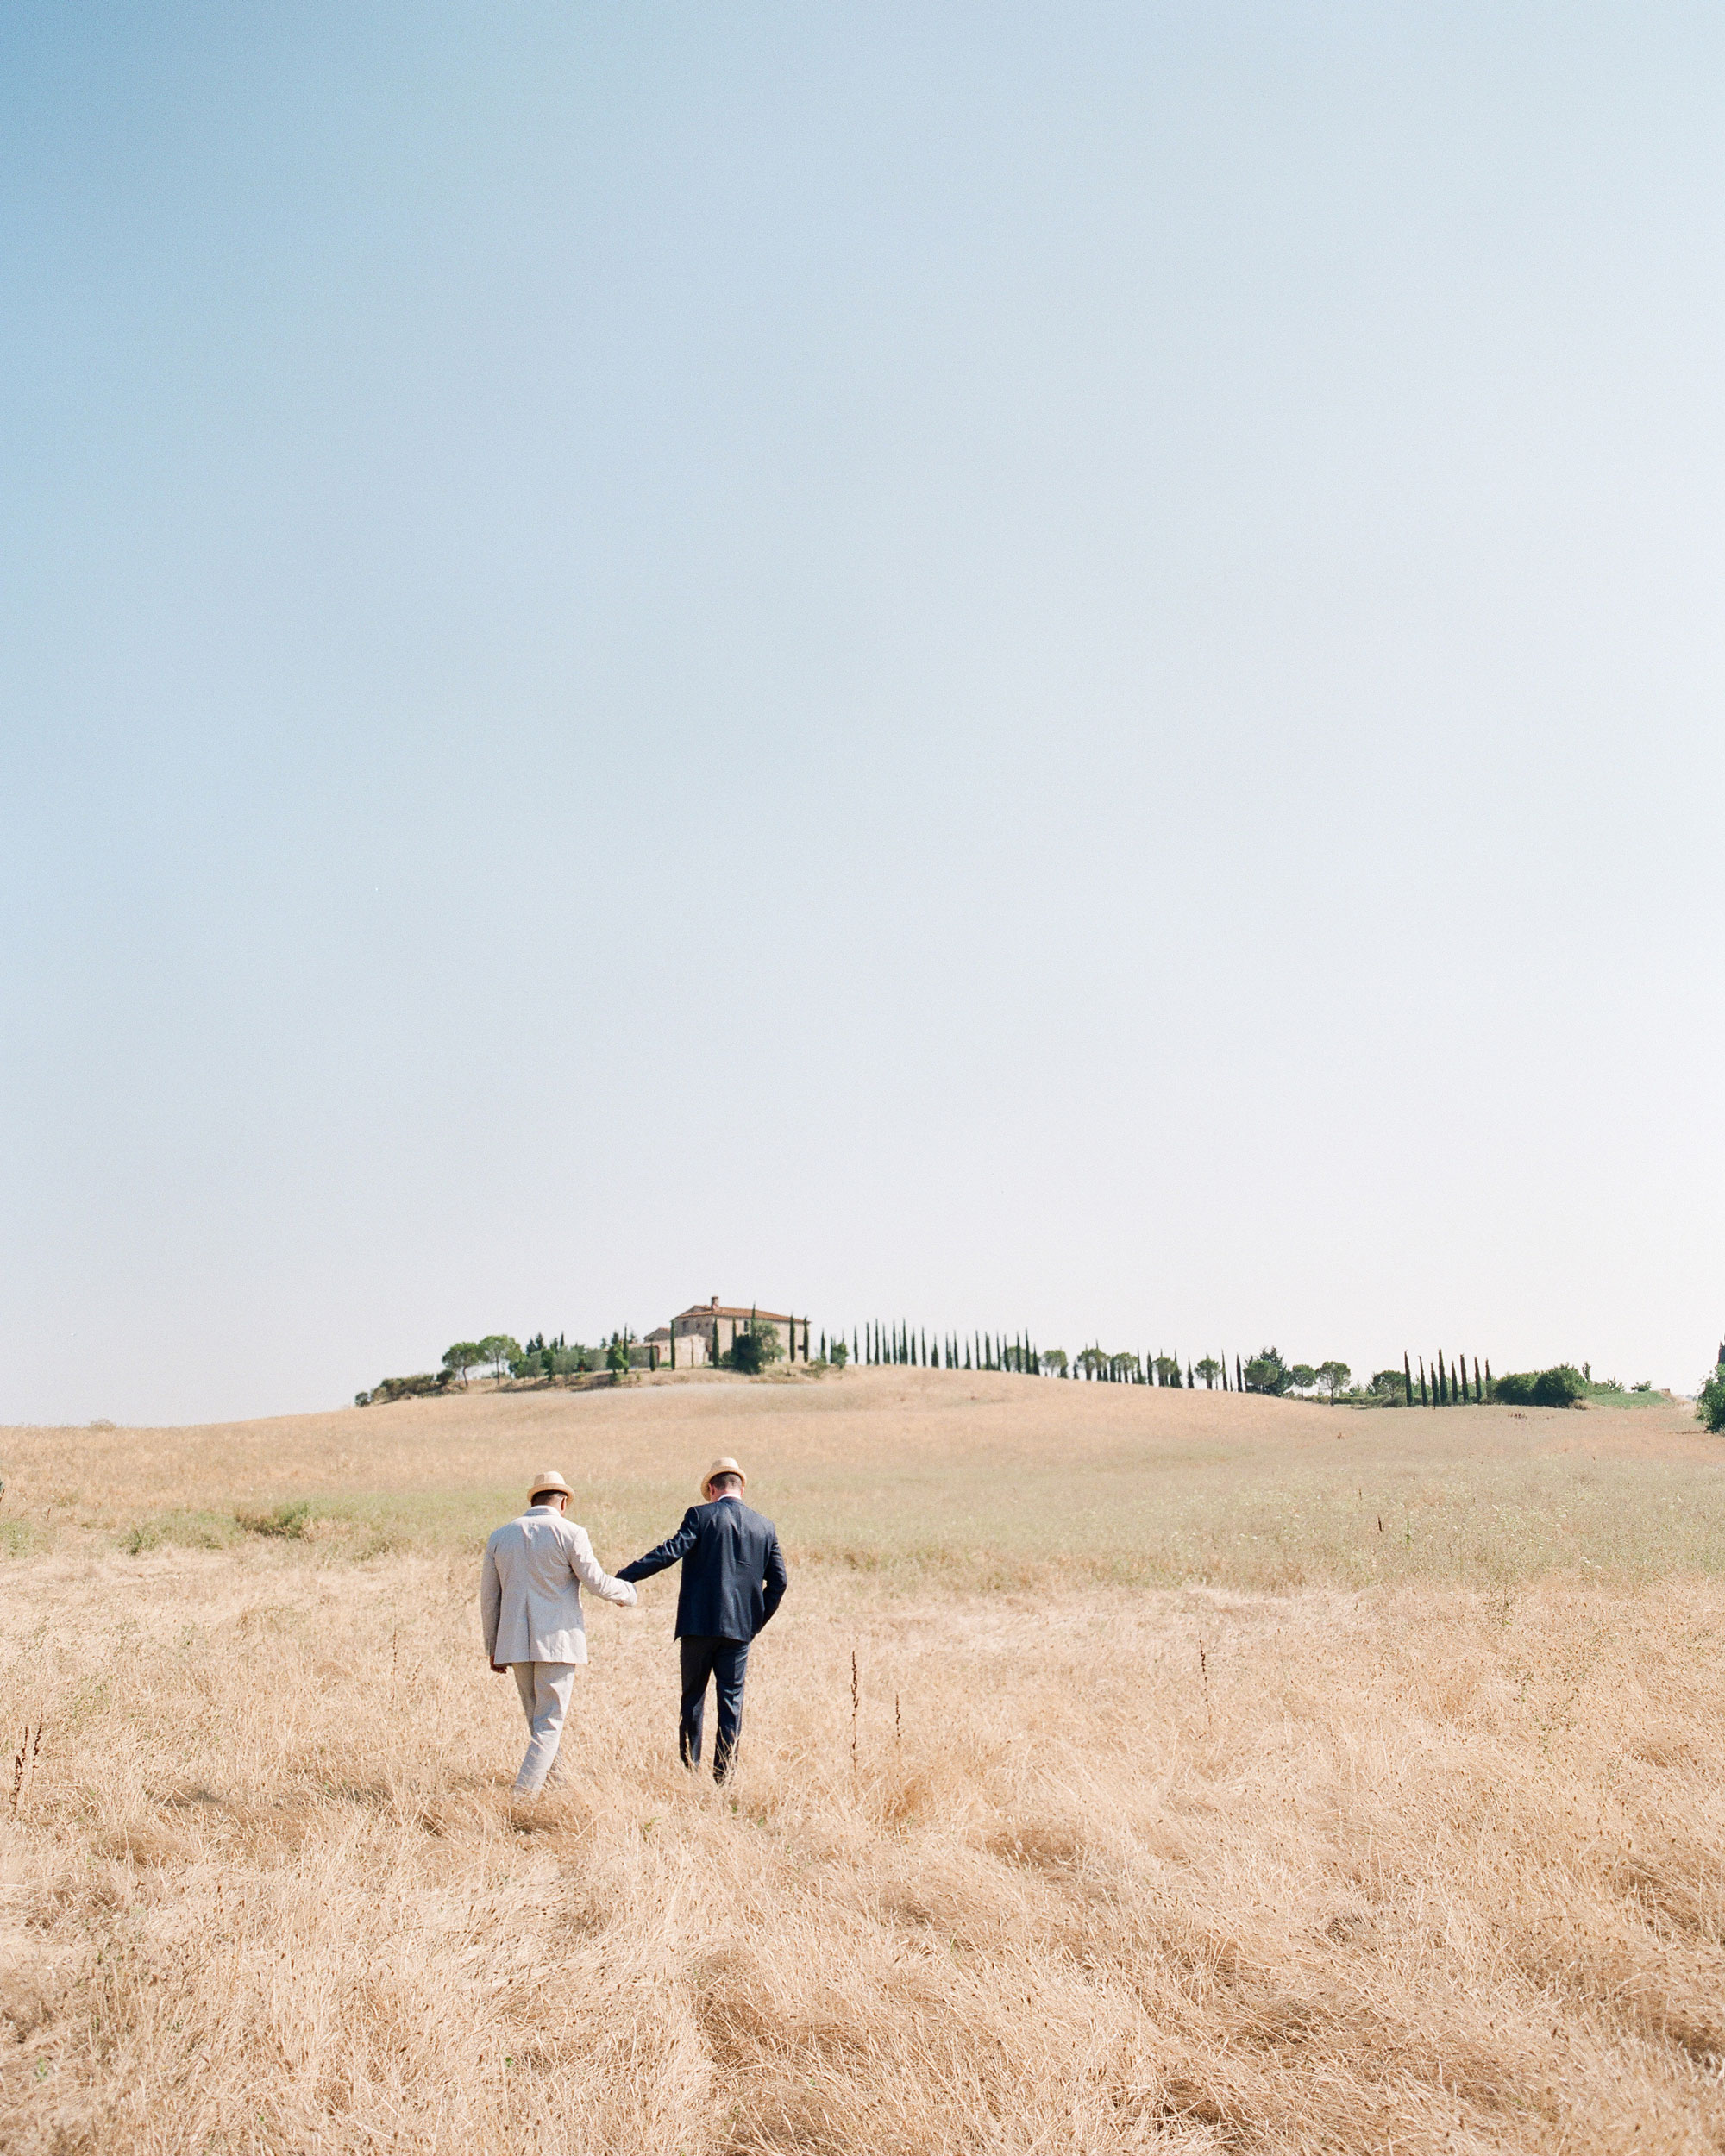 dennis-bryan-wedding-italy-countryside-couple-005-0221-s112633.jpg